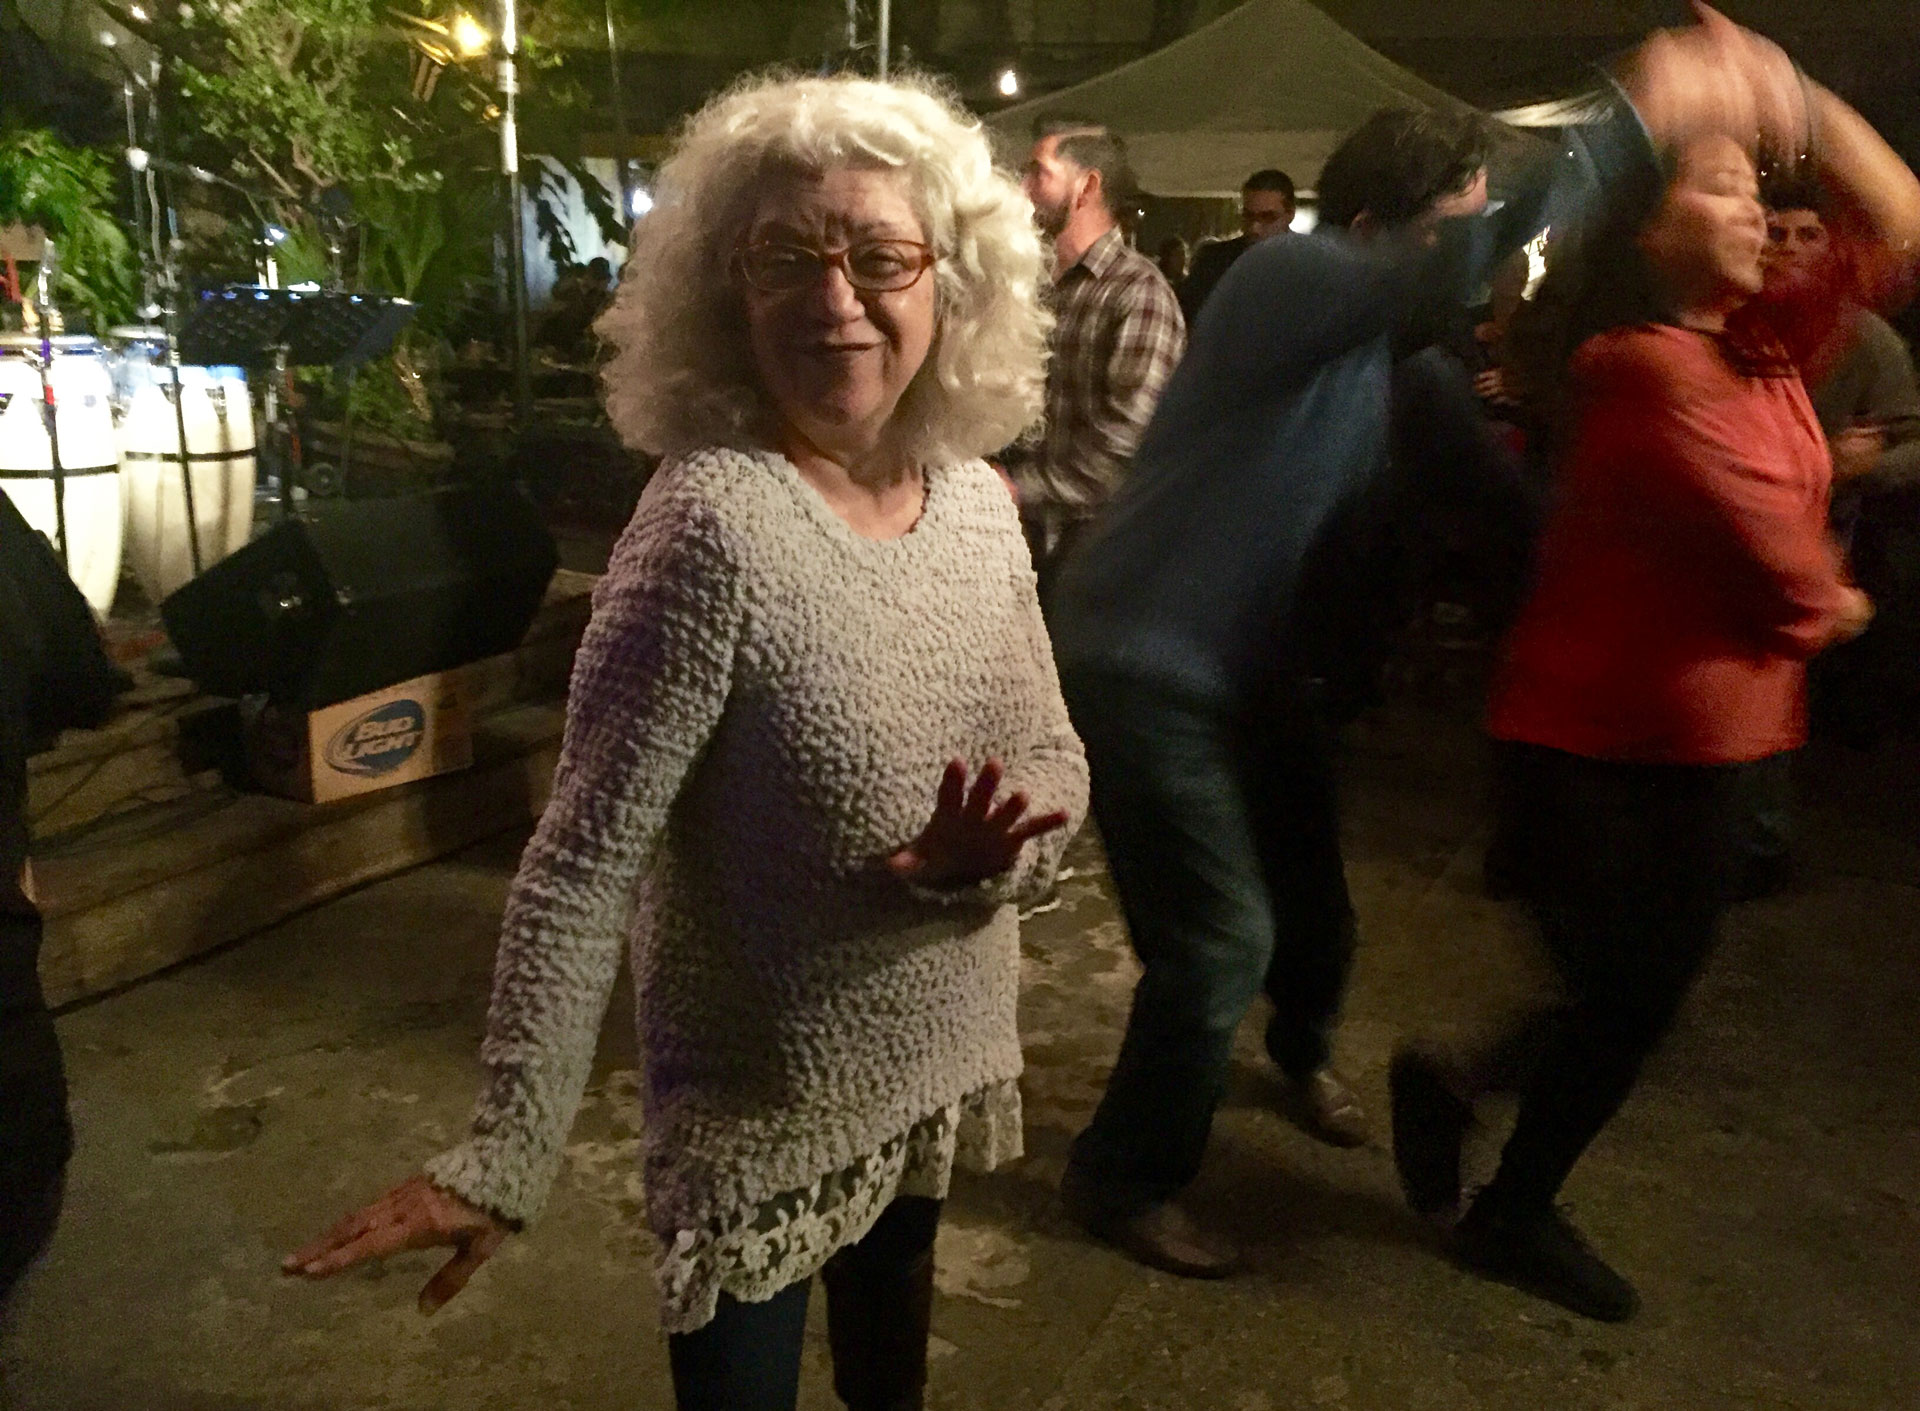 Irma Iñiguez, a long-time dancer, shows off her salsa skills during San Francisco Mission District bar El Rio's Salsa Sunday.